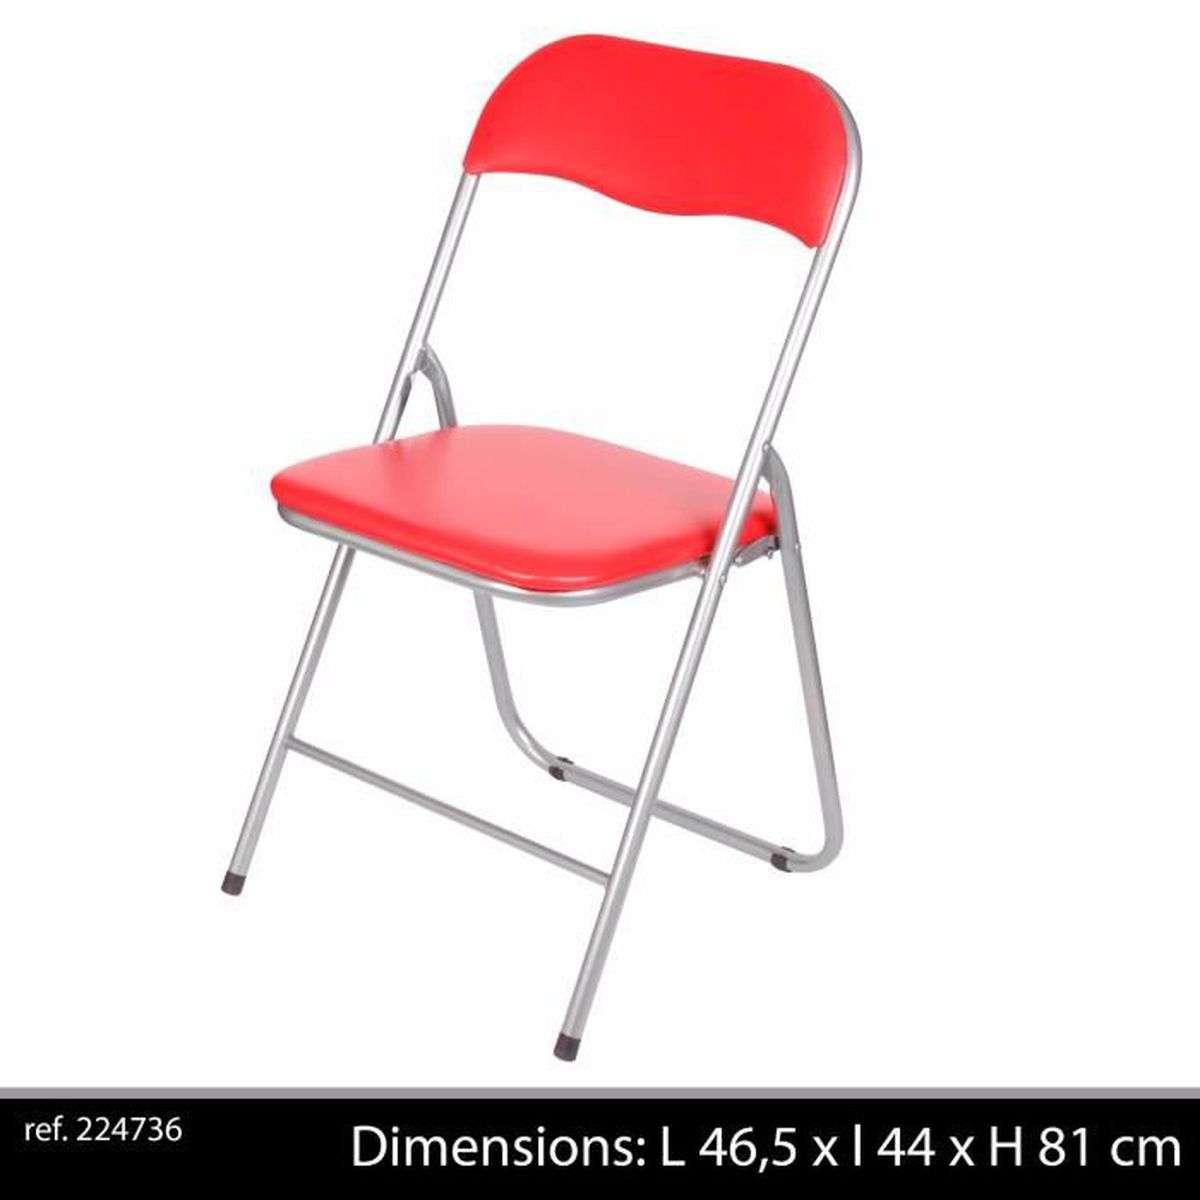 Chaise fauteuil appoint pliante pliable rouge assise for Chaise fauteuil